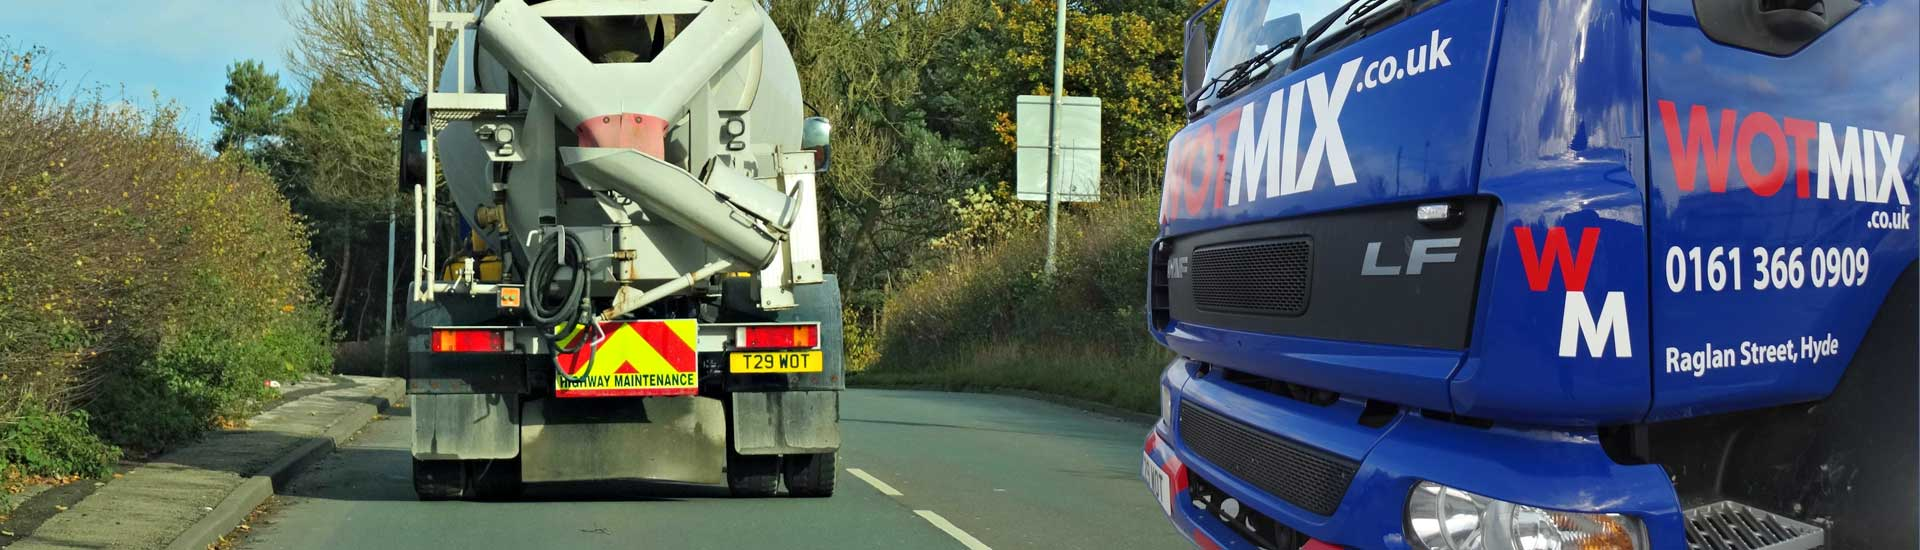 We Deliver Ready Mix Concrete to Oldham